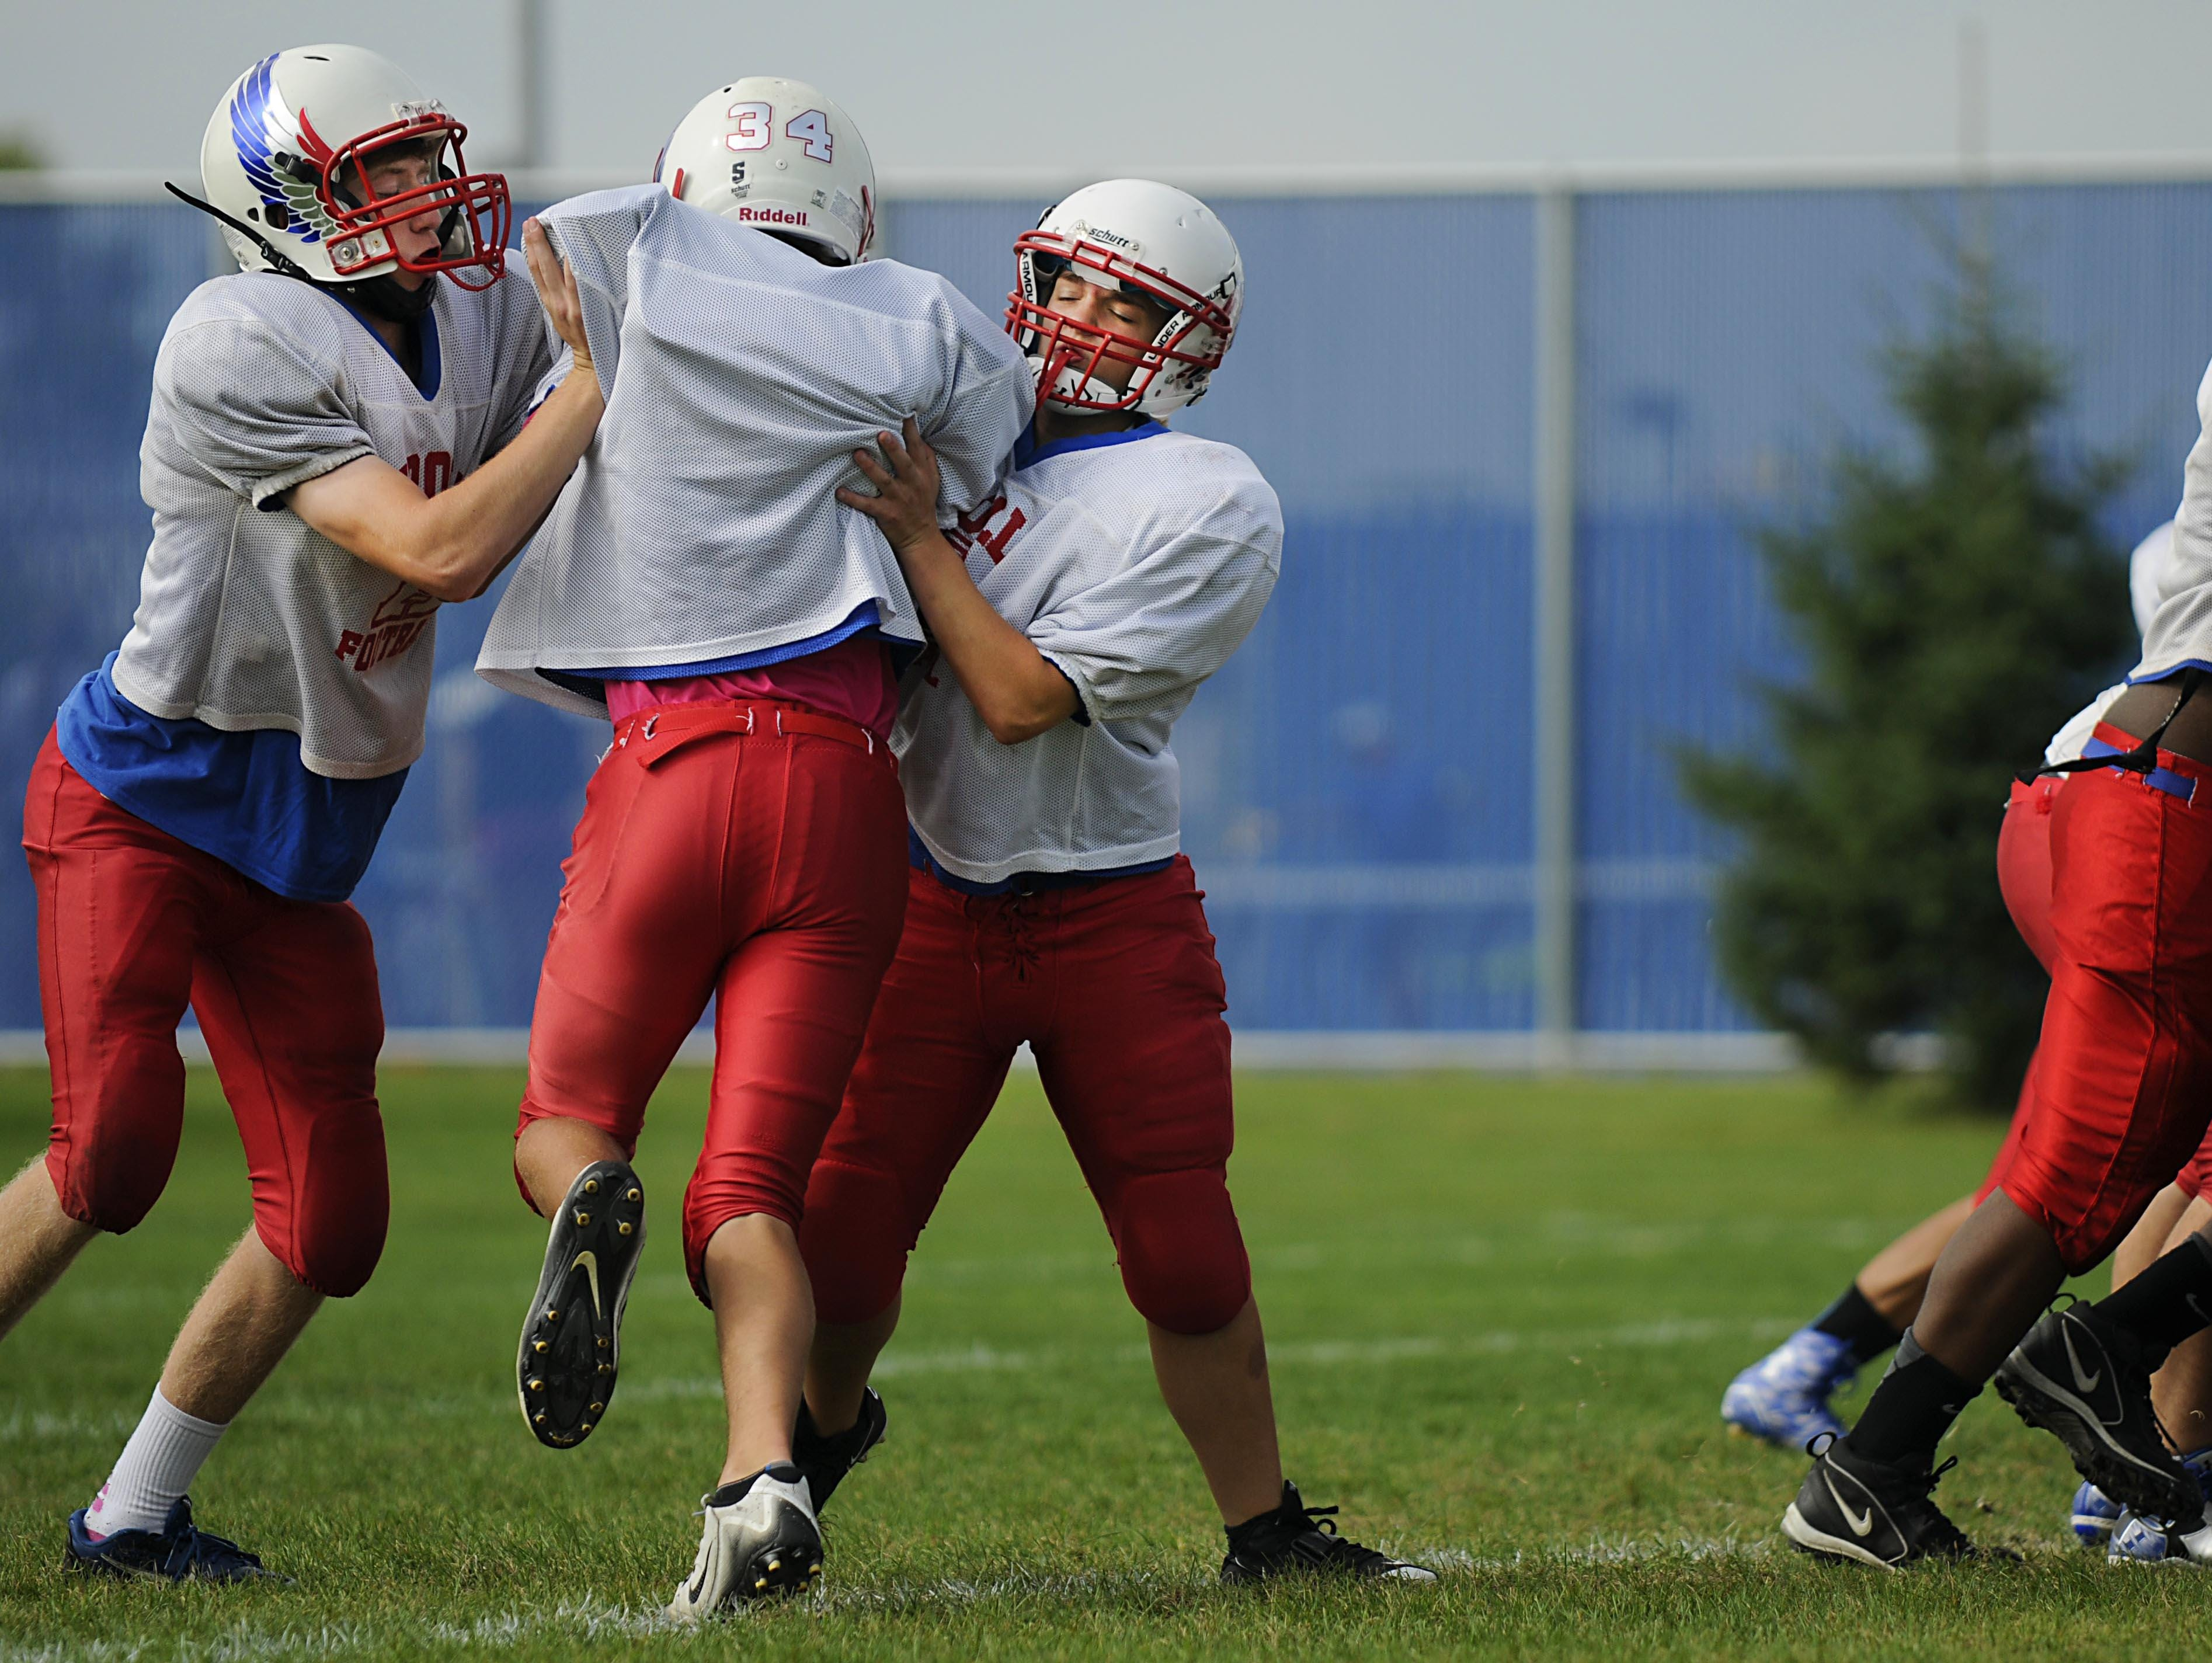 Tight end receiver Jake Reber and linebacker Angie Stolt block wide receiver Peyton Joos at practice on Wednesday at Apollo High School.